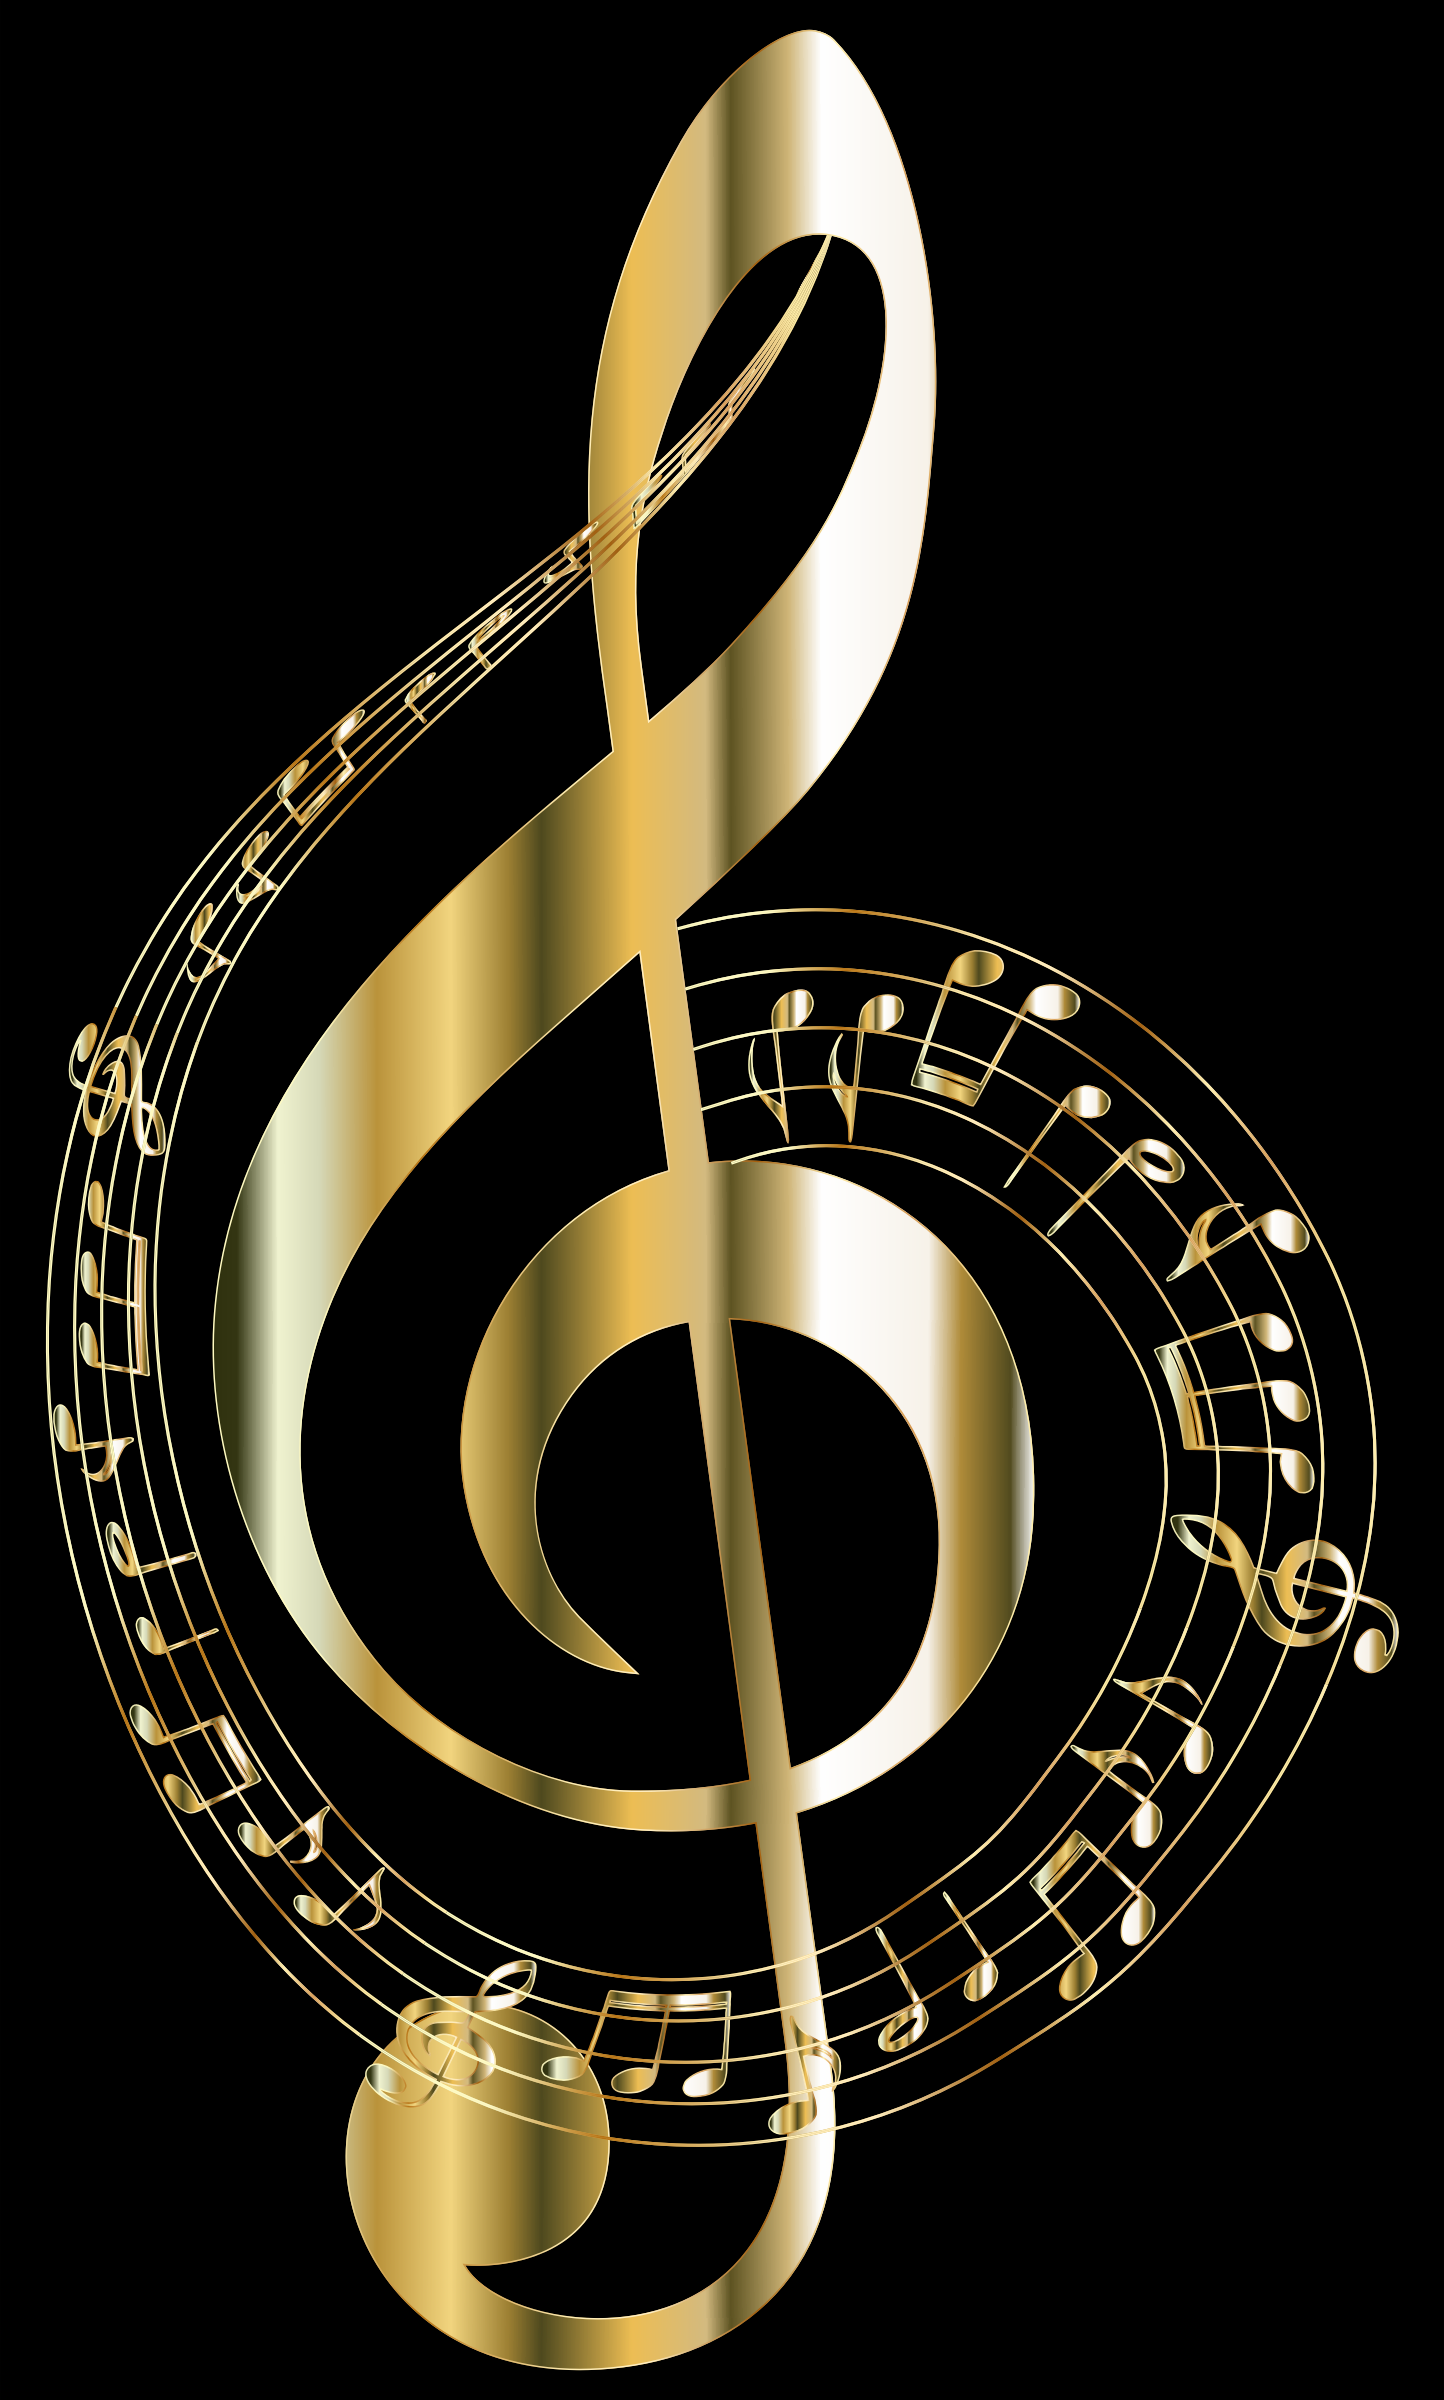 Gold Musical Notes Typography 2 by GDJ